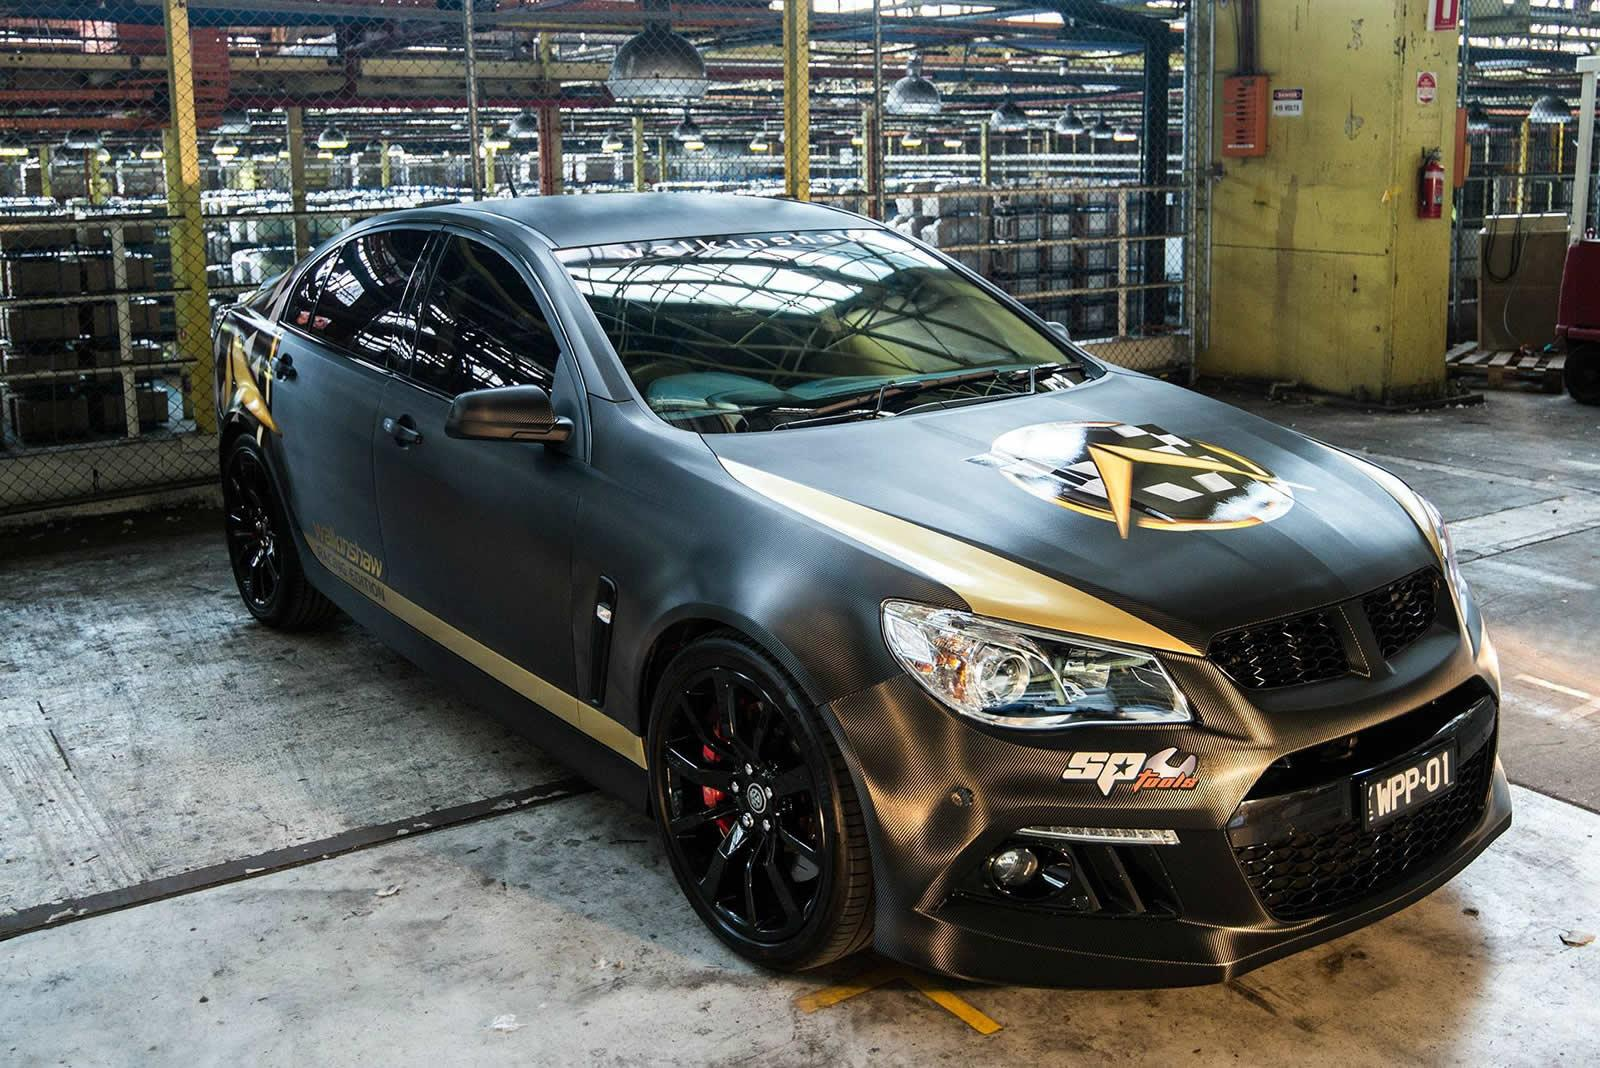 Commodore Pumped to 550 kW by Walkinshaw Performance ...